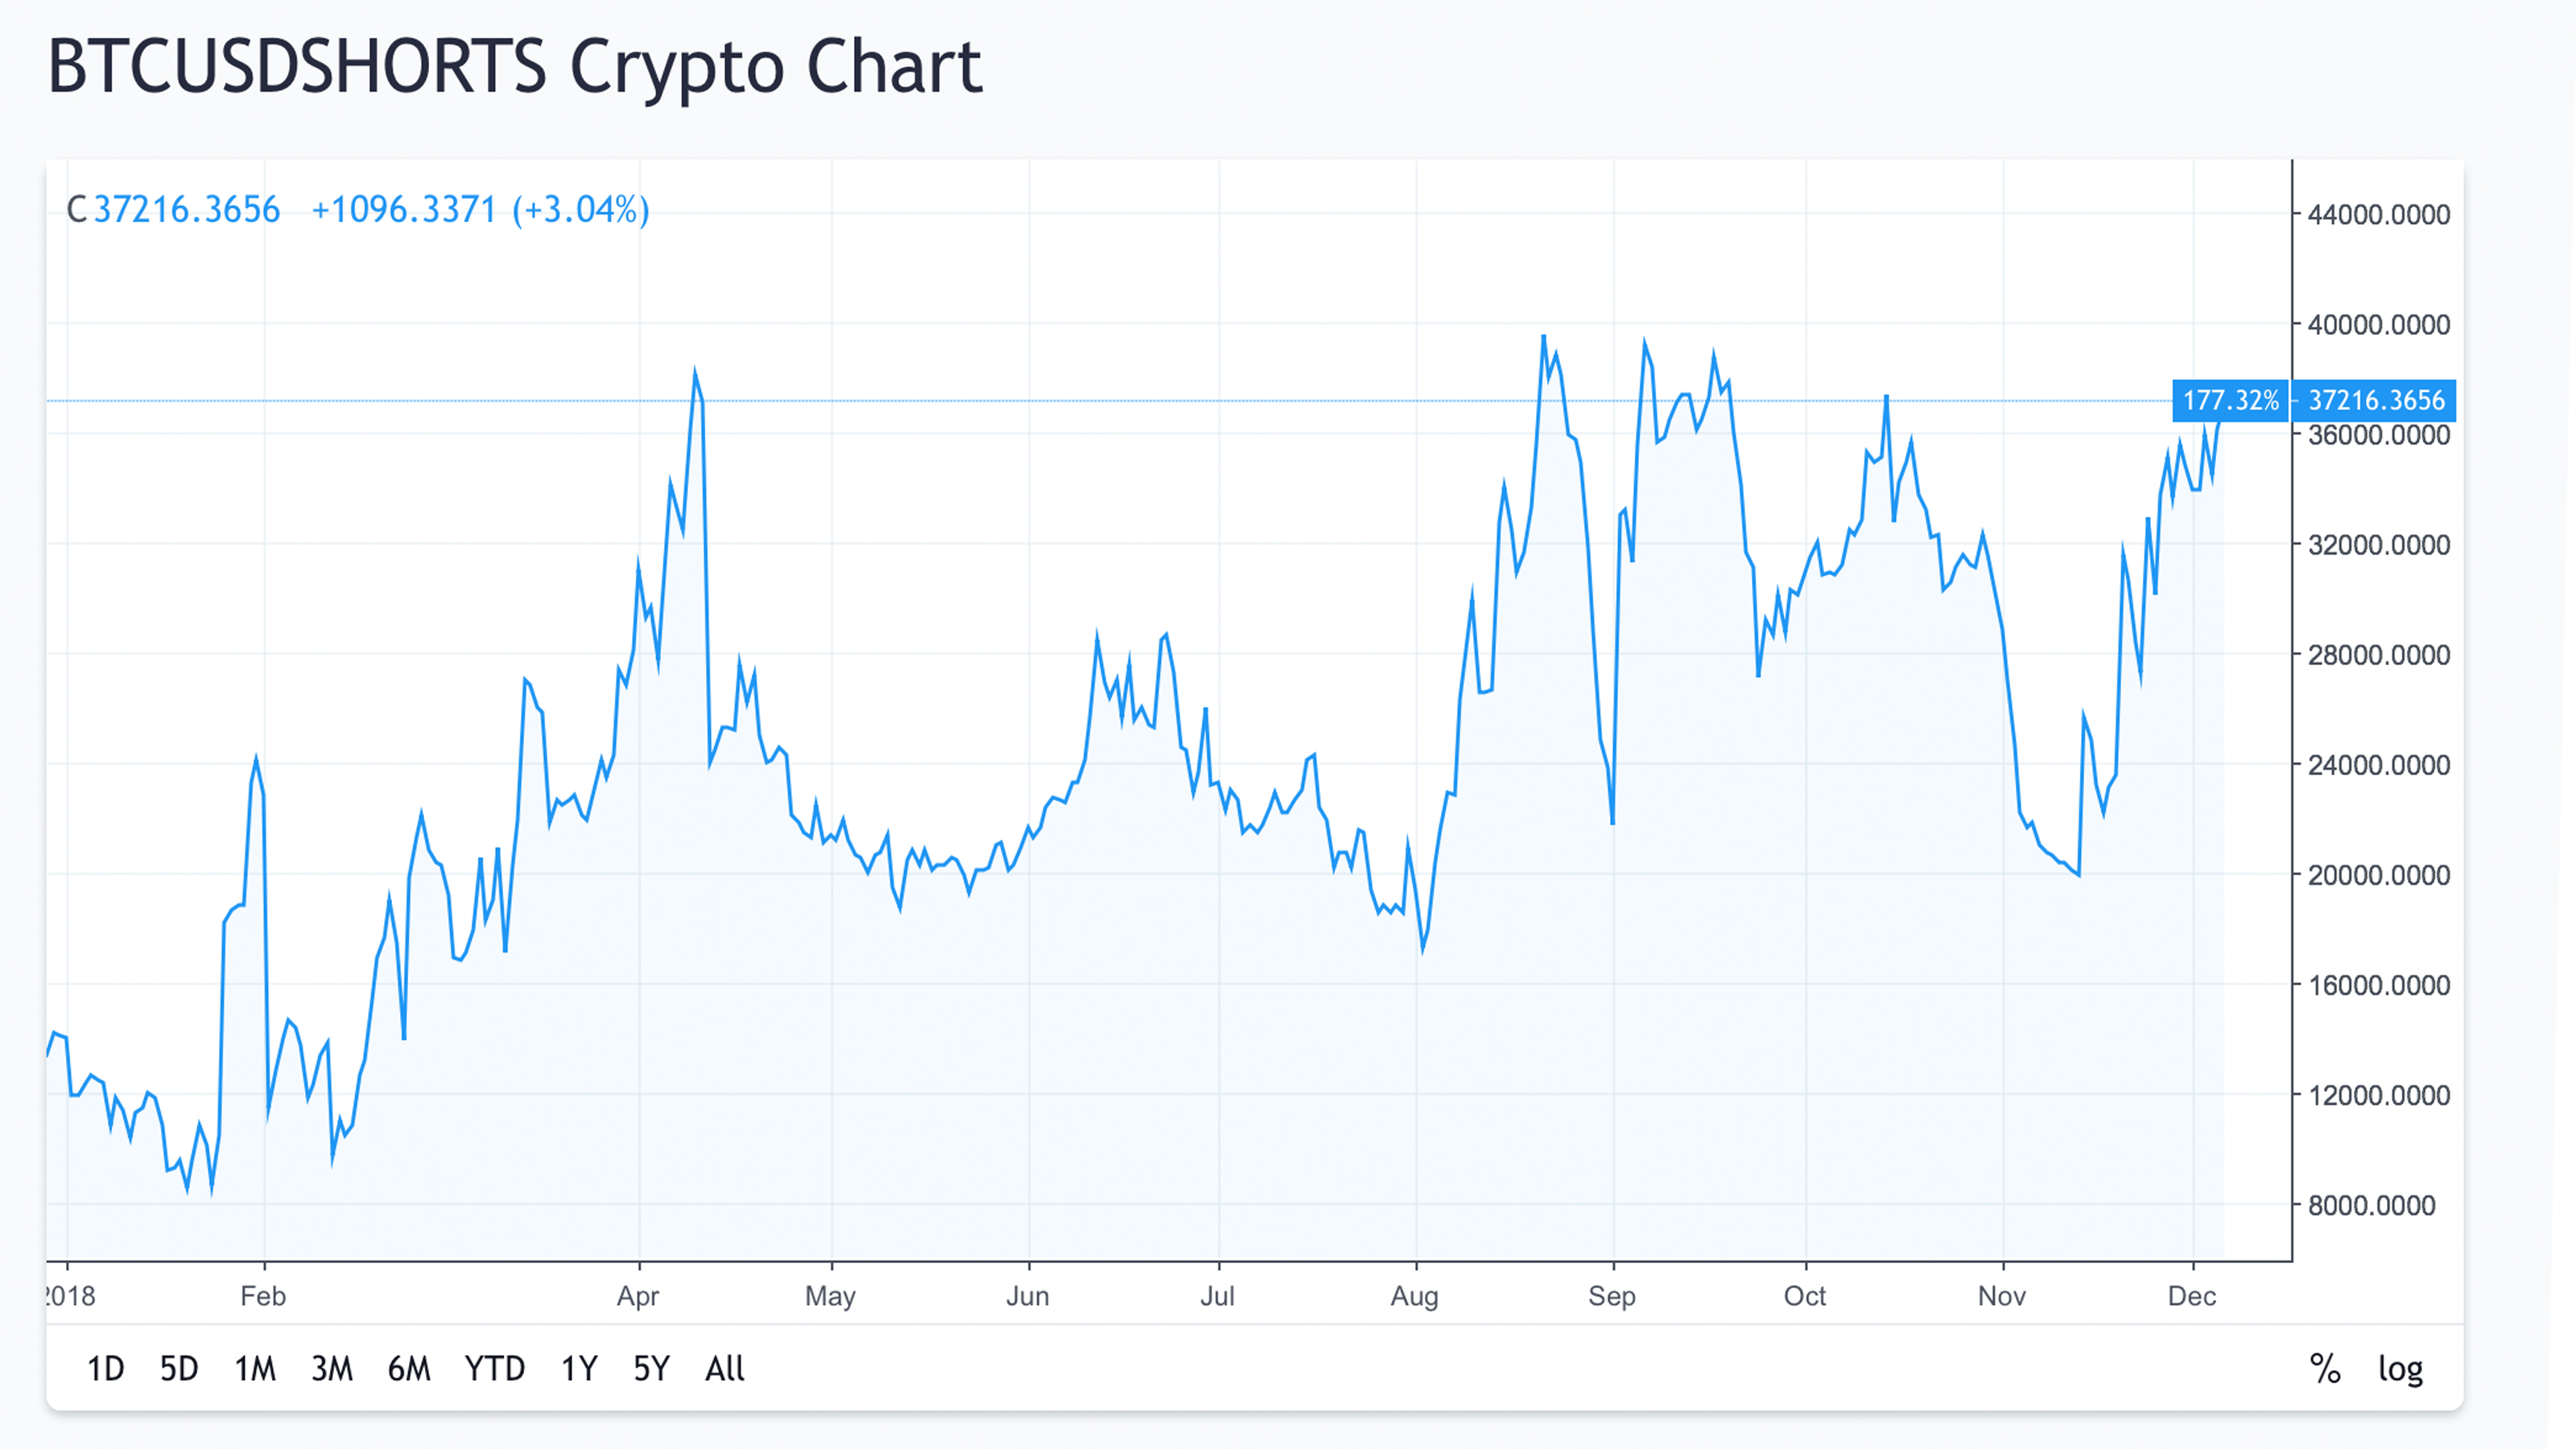 Chinese Miners Short BTC Markets to Hedge Against Falling Prices